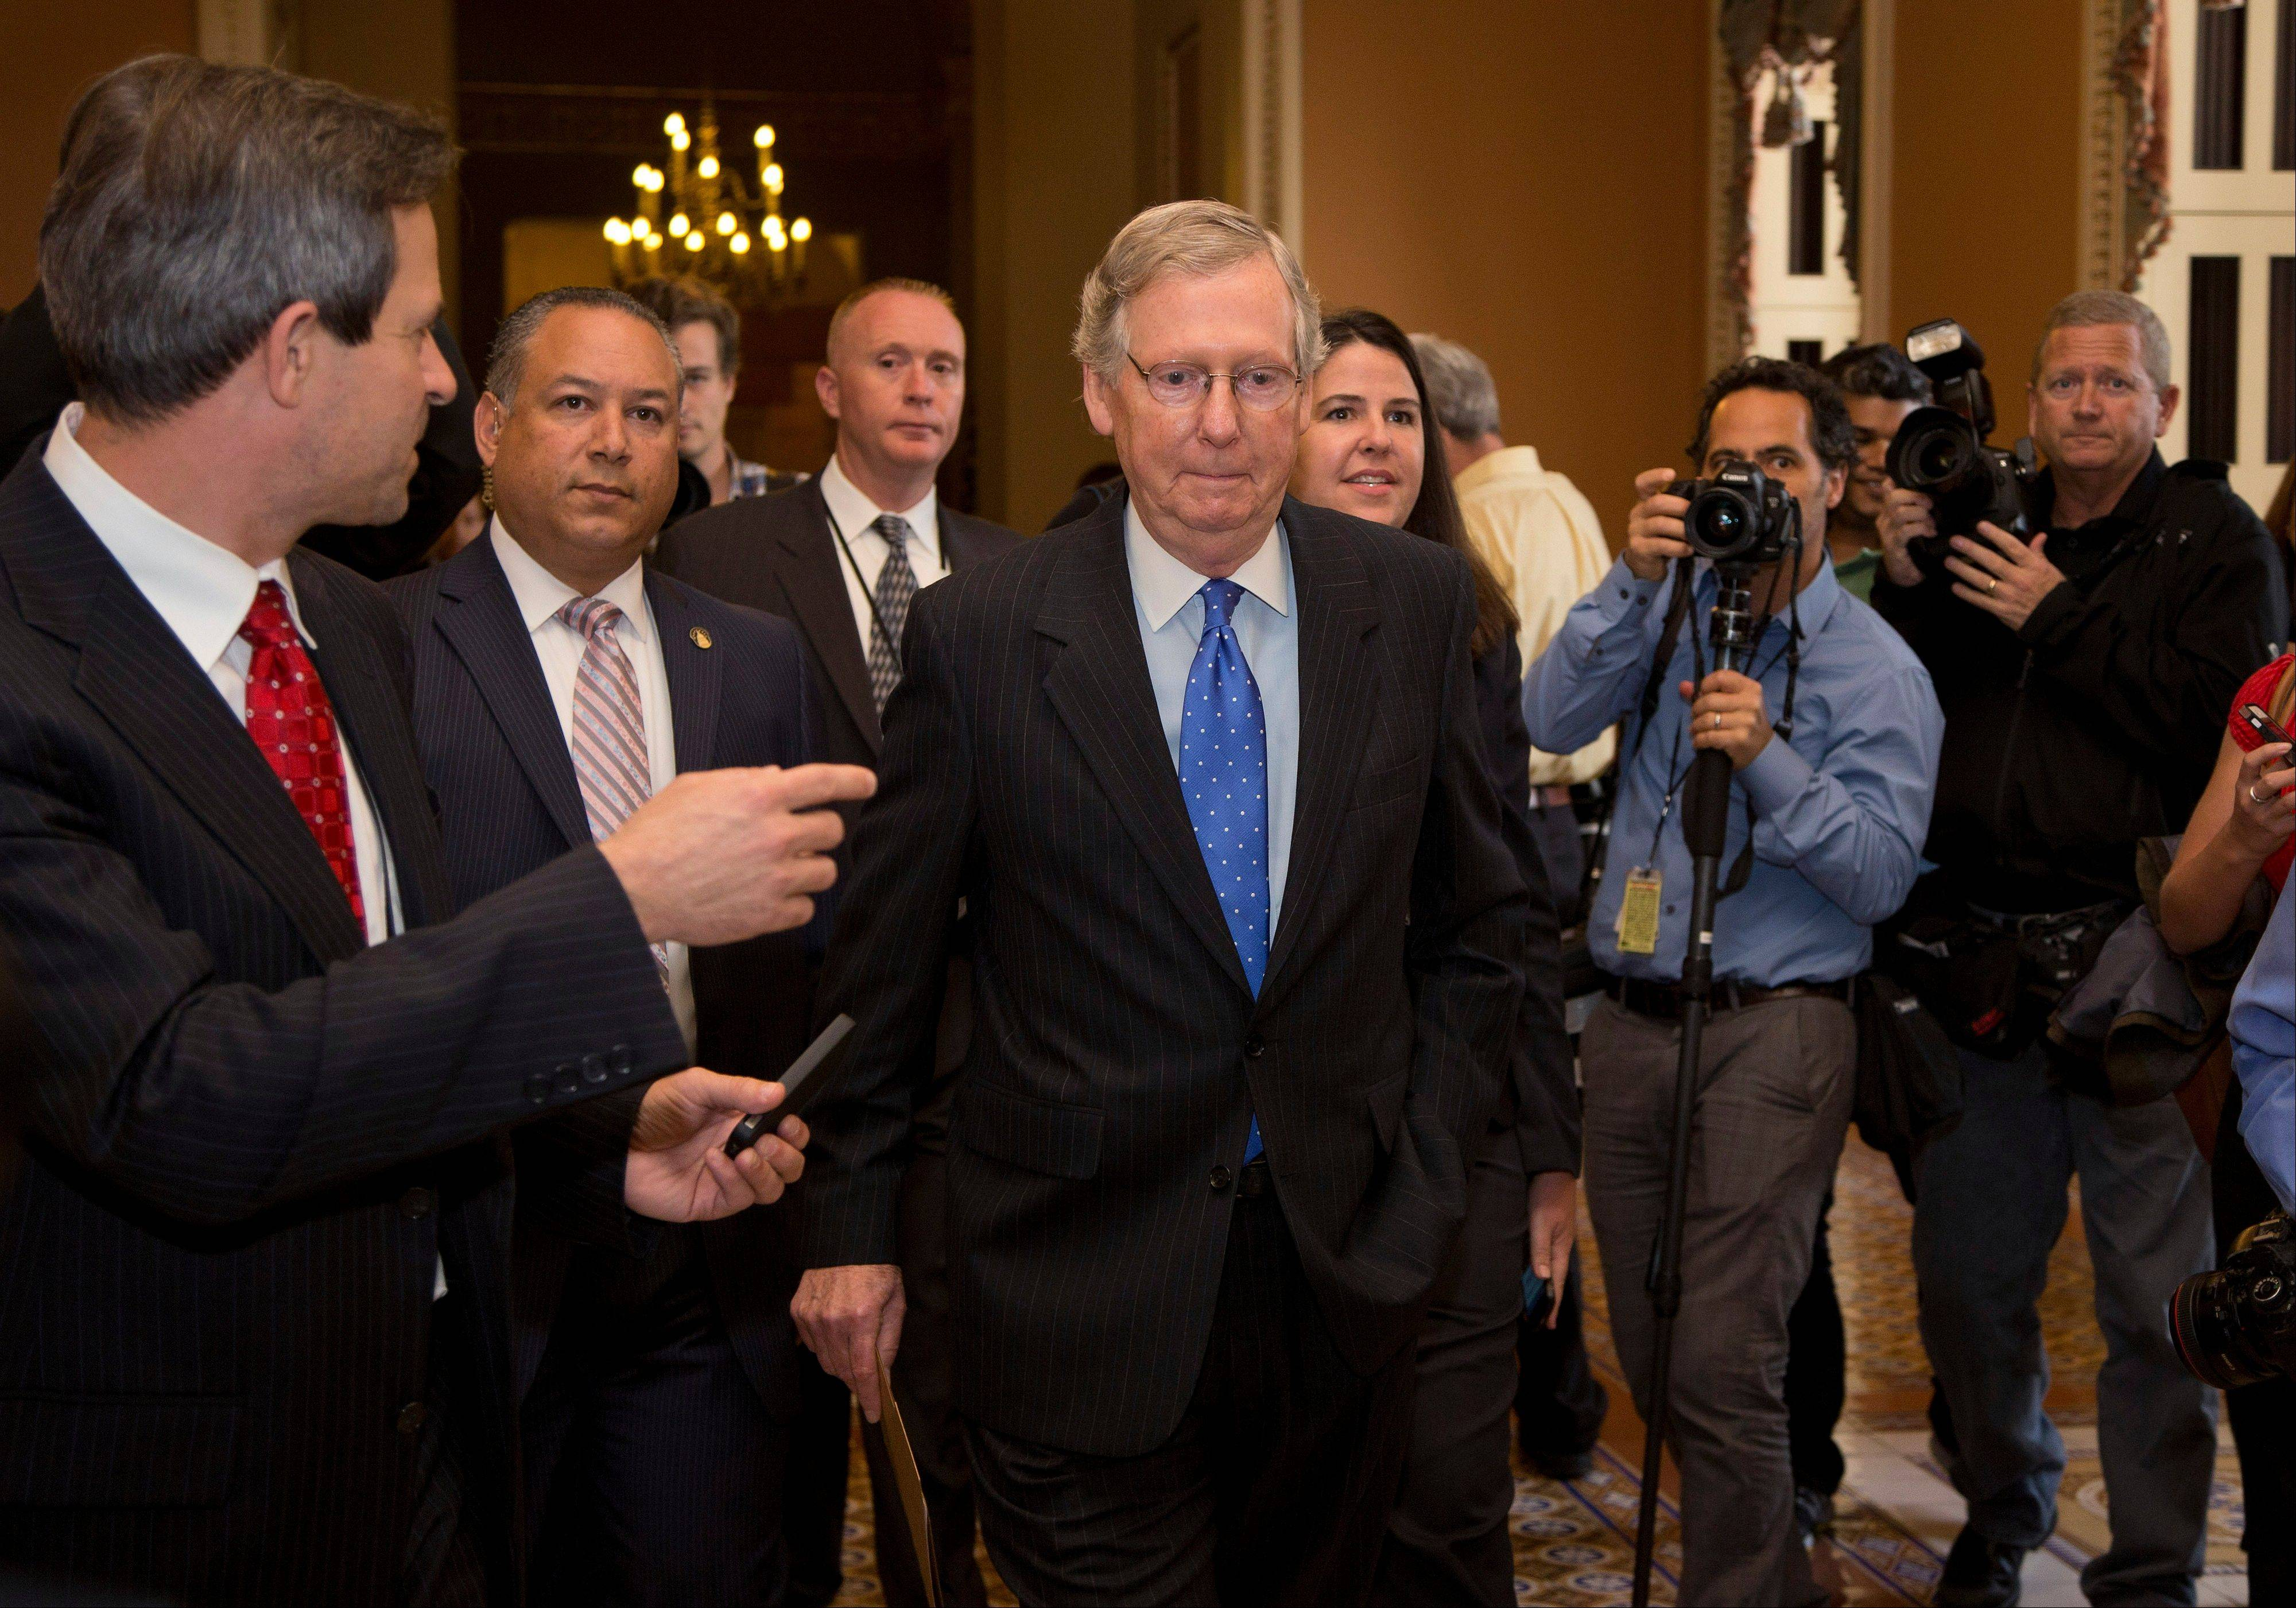 Senate Minority Leader Sen. Mitch McConnell, R-Ky., walks to the Senate floor after agreeing to the framework of a deal to avoid default and reopen the government on Capitol Hill on Wednesday, Oct. 16, 2013 in Washington.